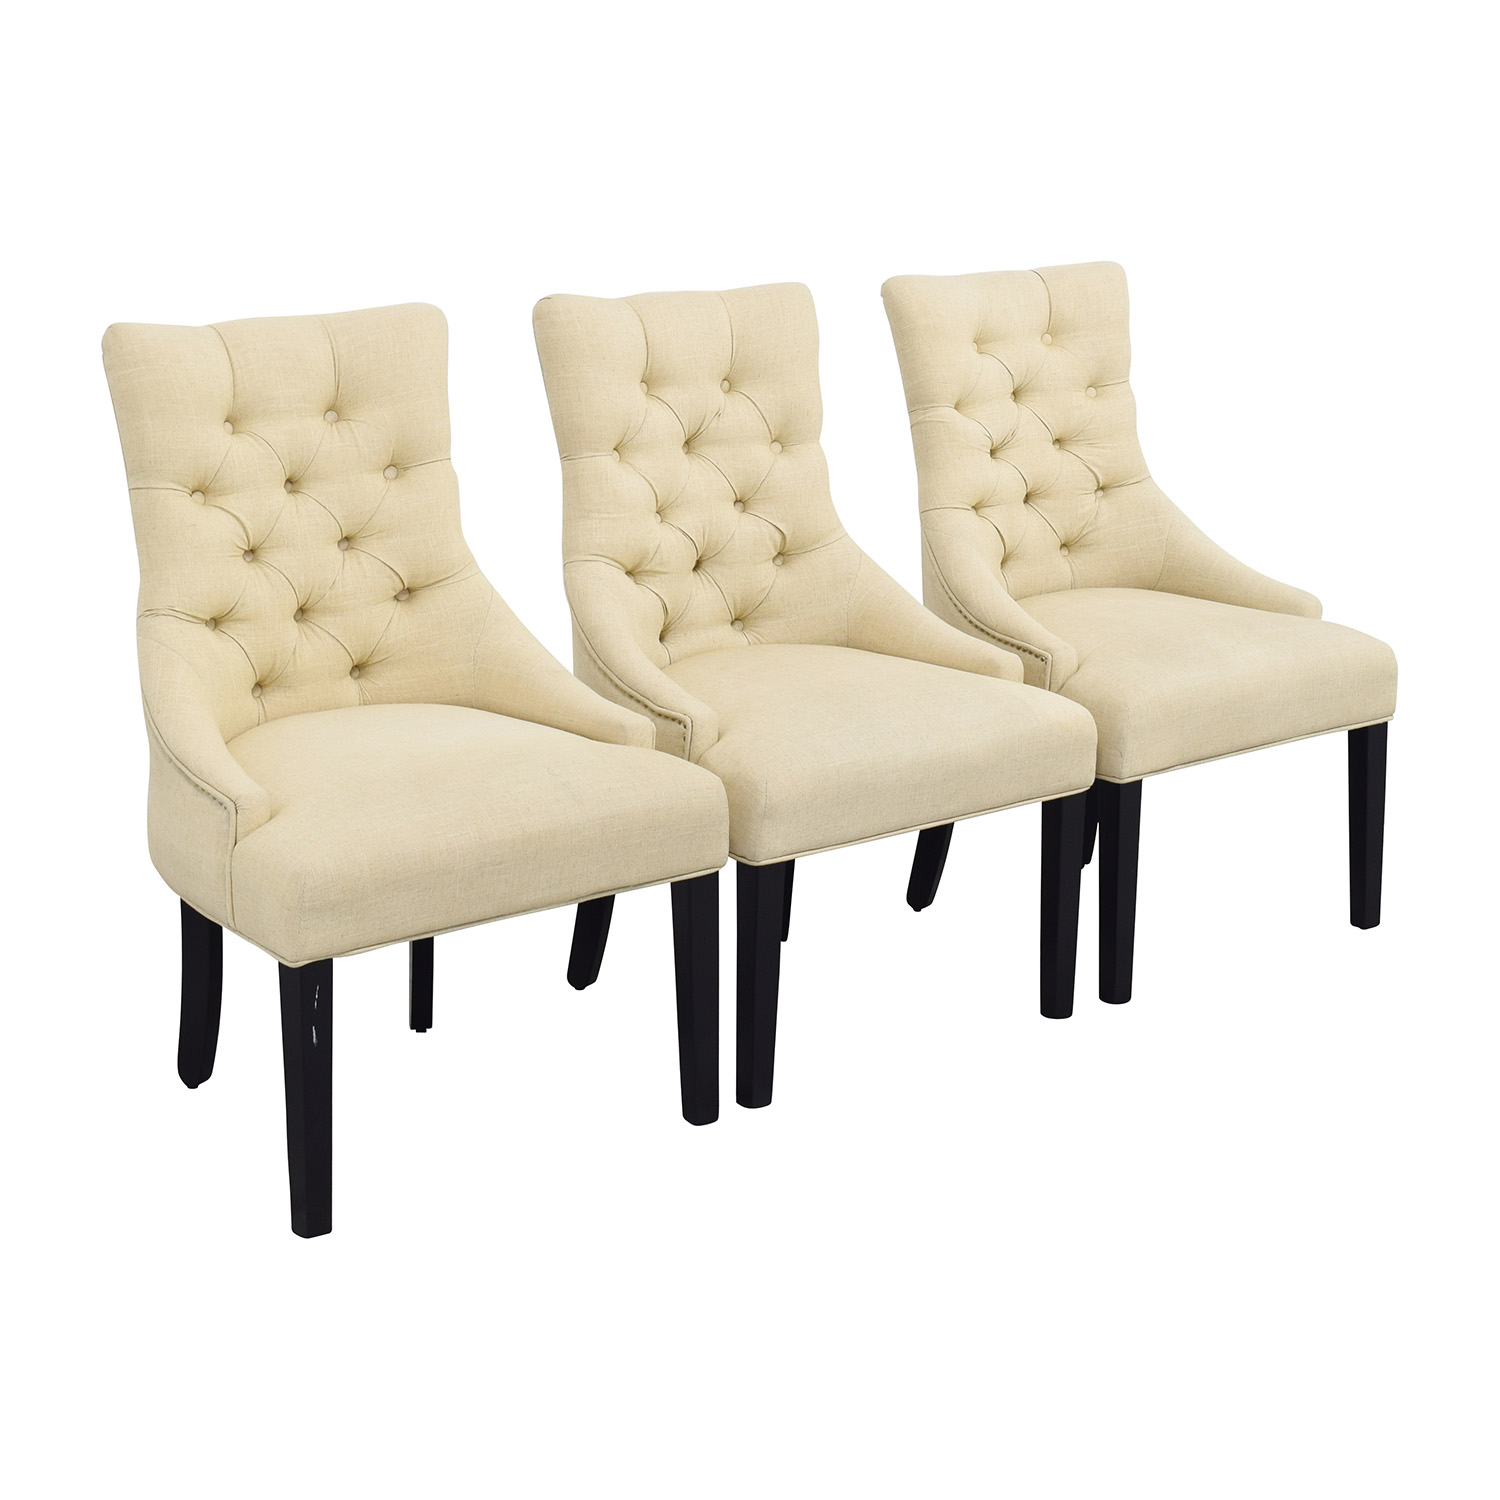 Genial ... West Elm West Elm Beige Tufted Wing Back Chairs ...